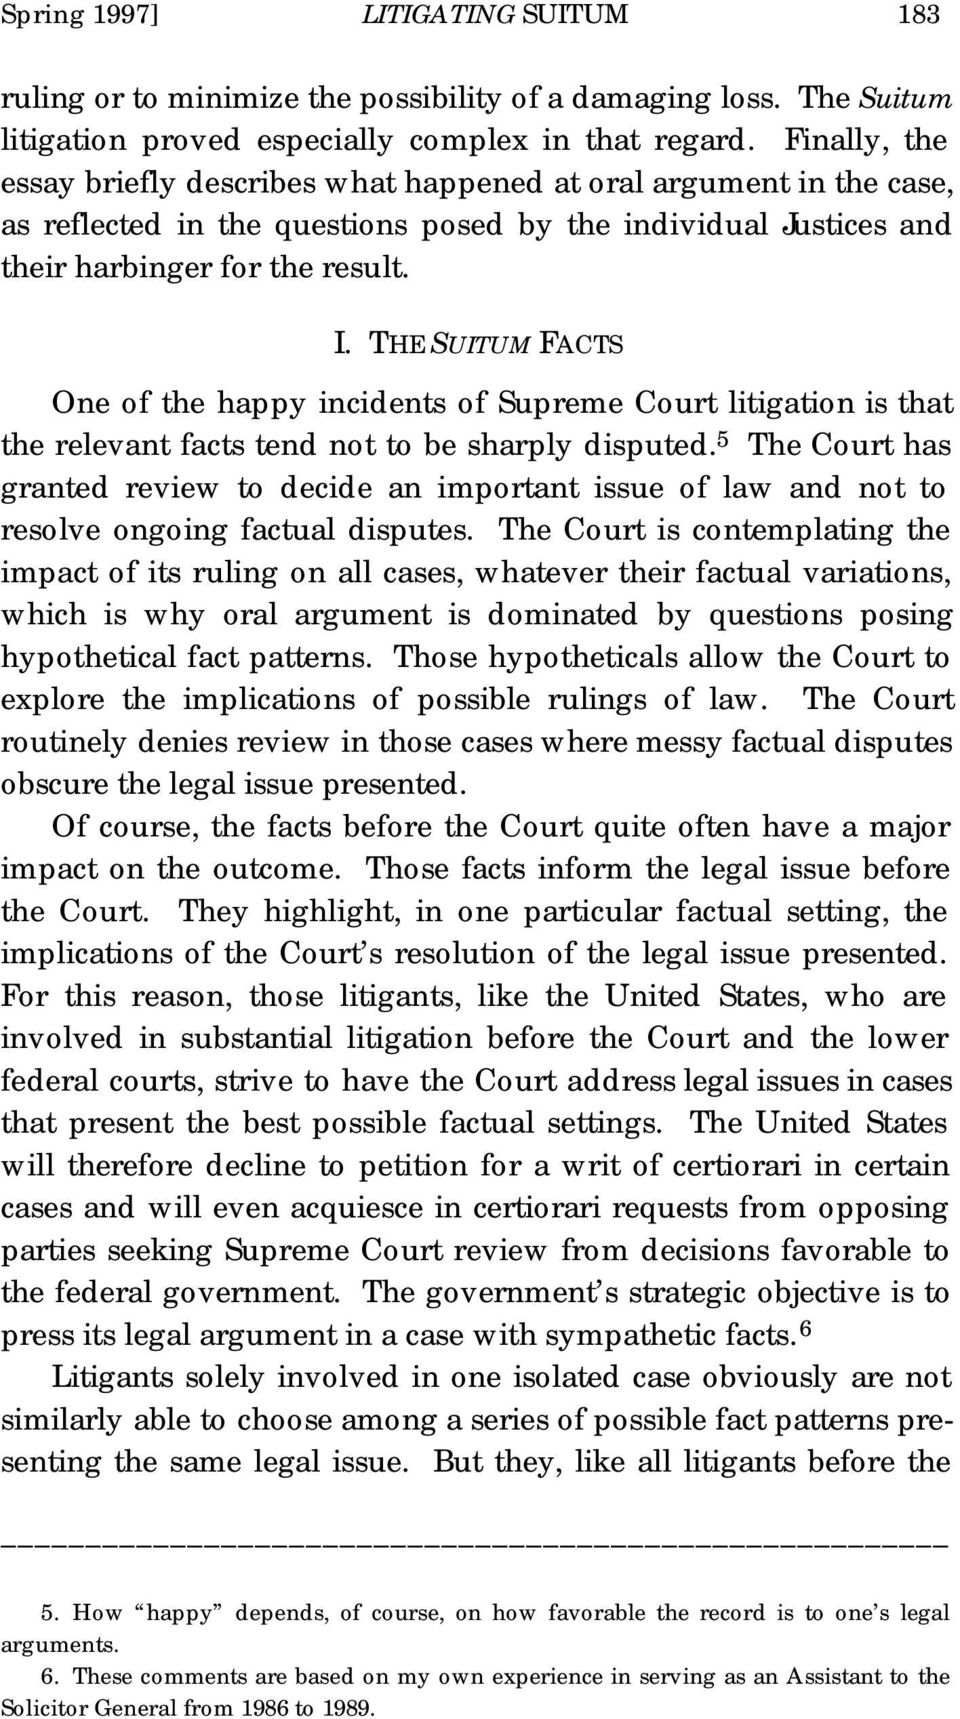 THE SUITUM FACTS One of the happy incidents of Supreme Court litigation is that the relevant facts tend not to be sharply disputed.